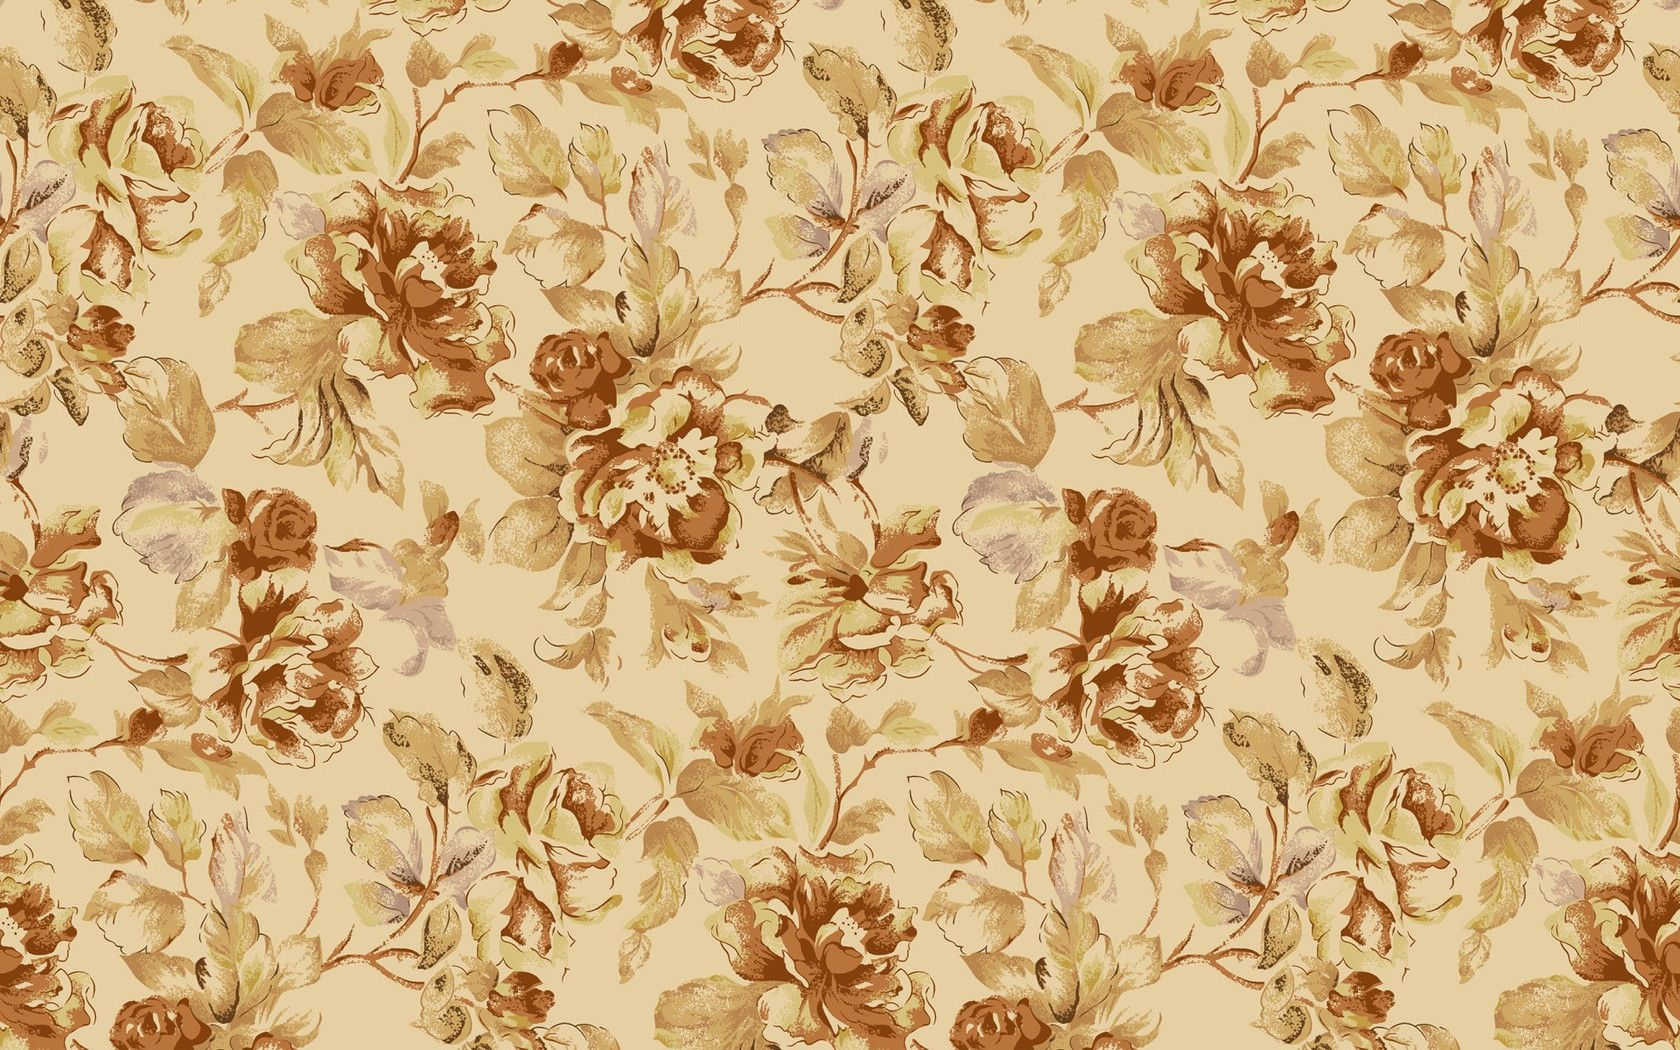 floral pattern | Download Vintage floral pattern wallpaper